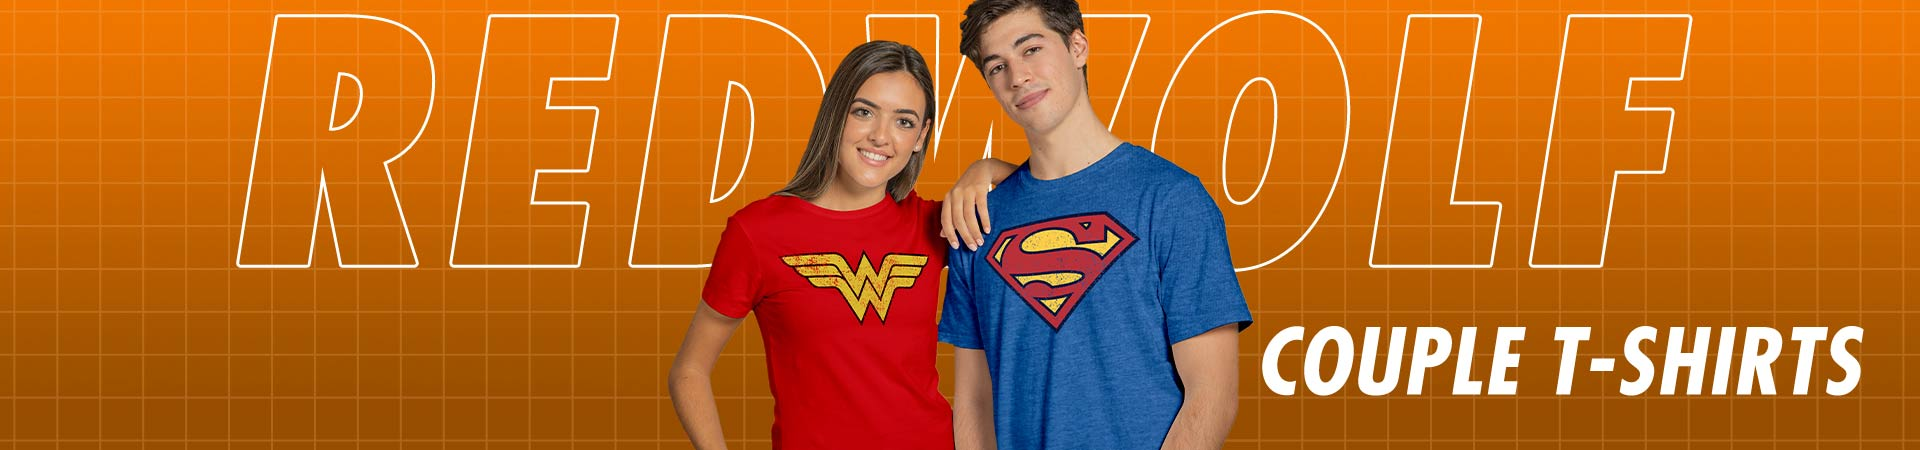 Category Banner - Couple T-shirts